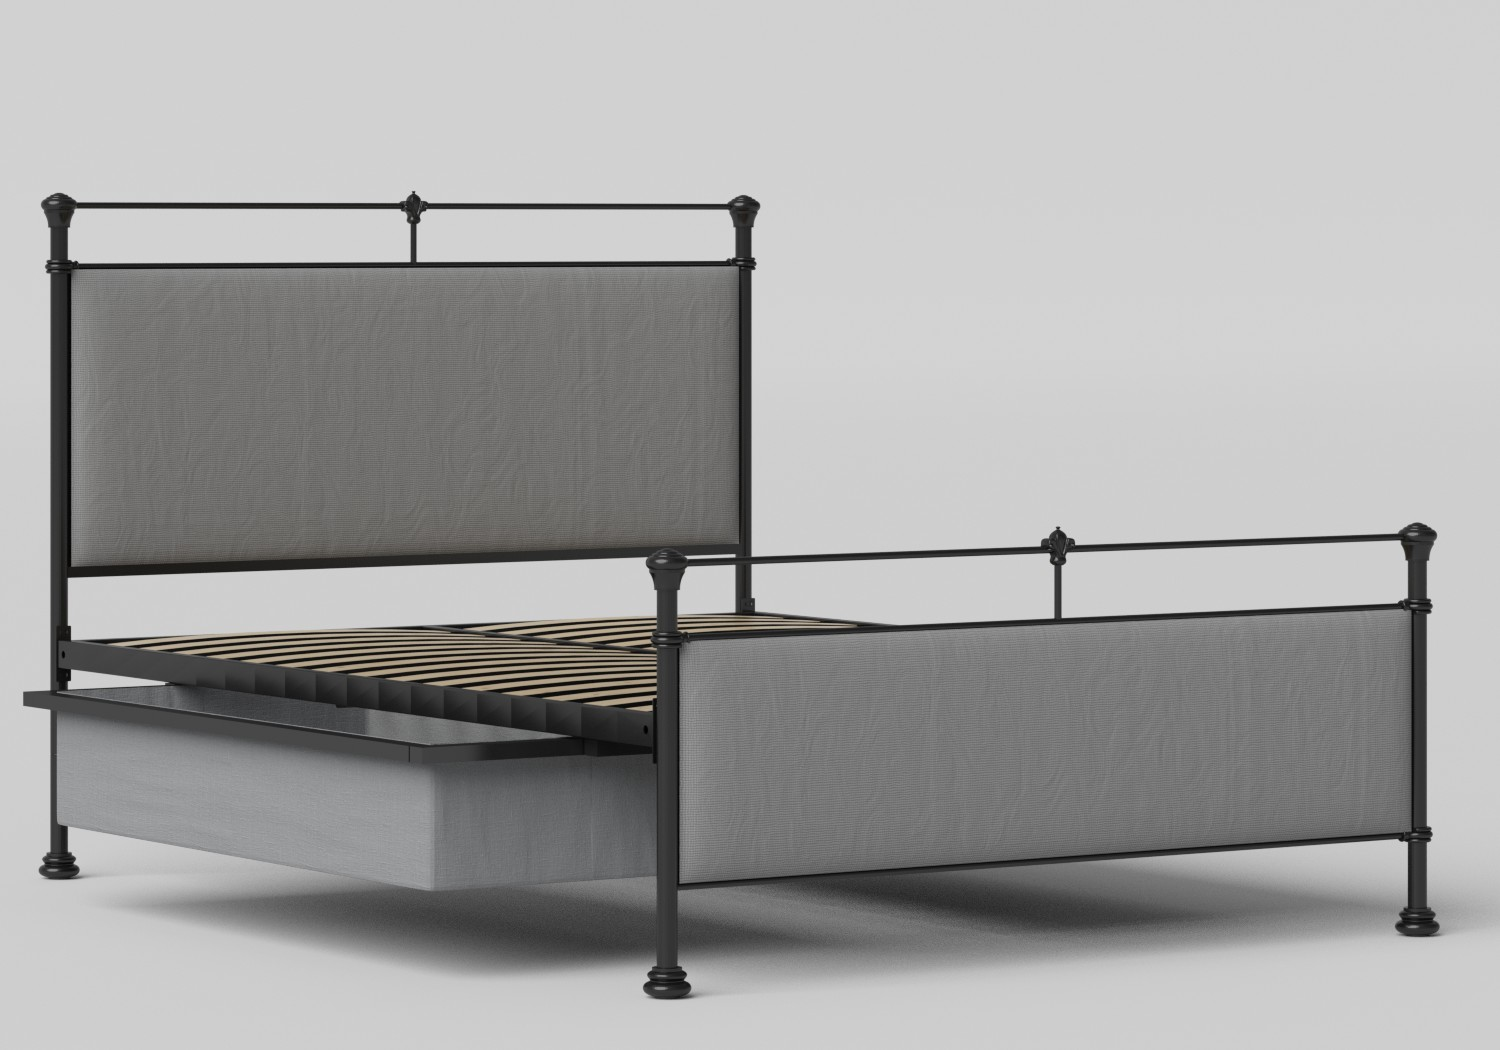 Nancy Iron/Metal Upholstered Bed in Satin Black with Grey fabric shown with underbed storage